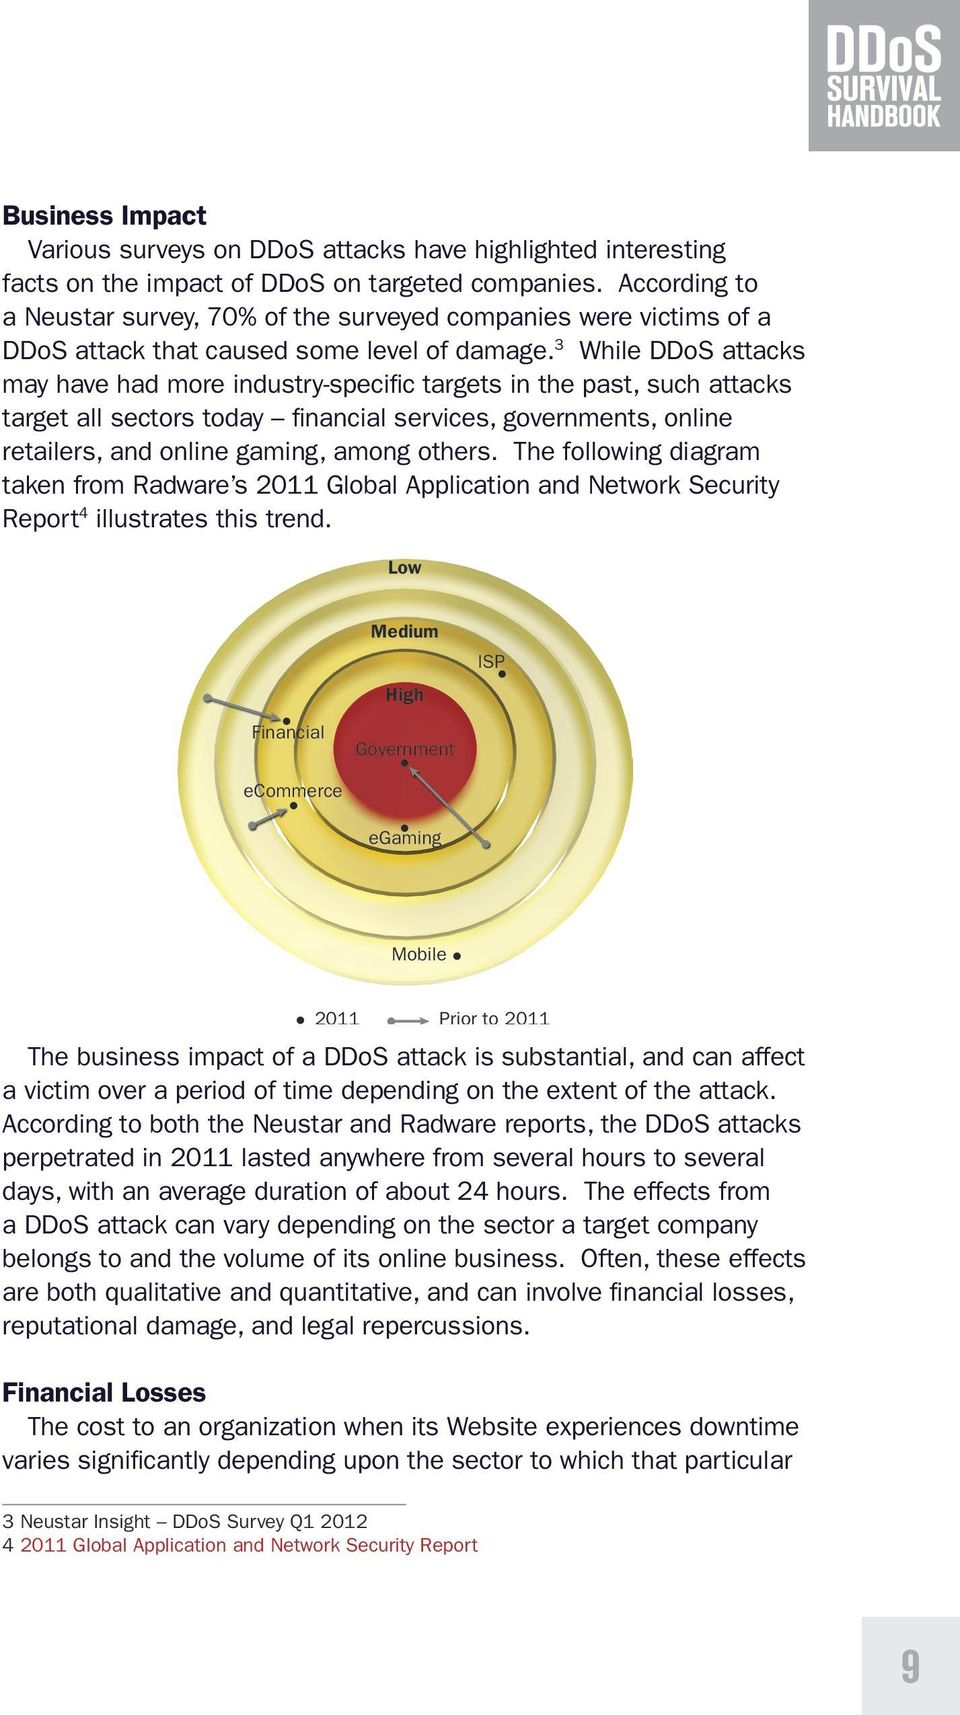 3 While DDoS attacks may have had more industry-specific targets in the past, such attacks target all sectors today financial services, governments, online retailers, and online gaming, among others.